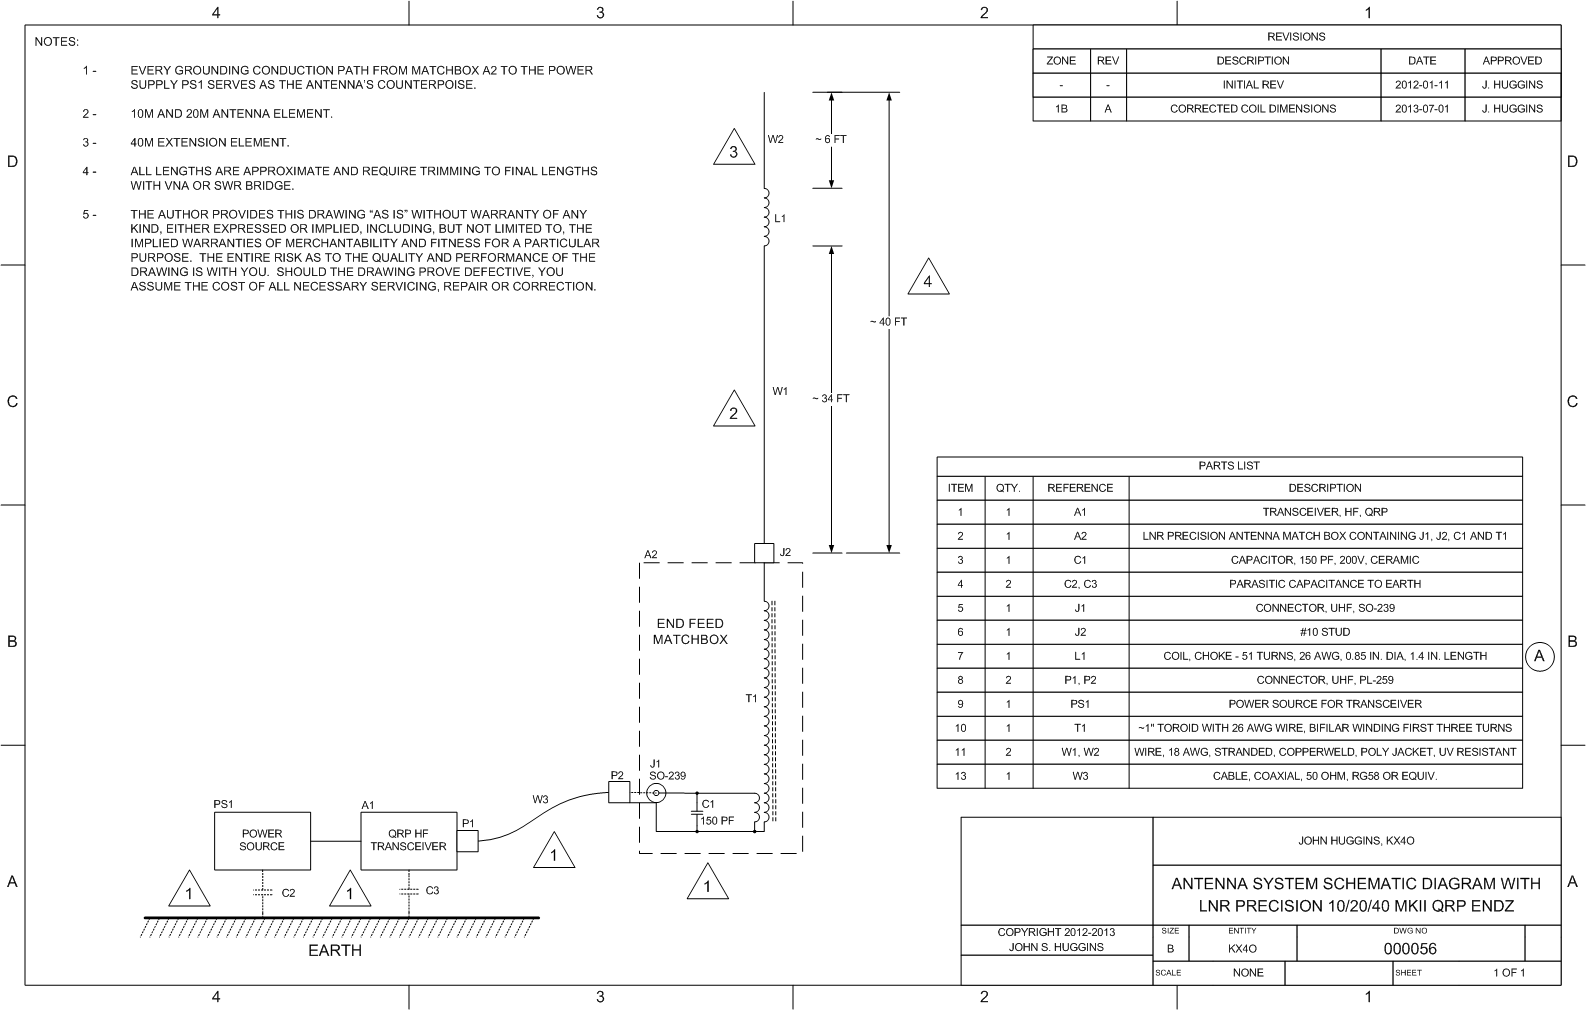 Efhw Lnr Precision Ef 10 20 40mkii Examination Antenna Schematic System Of 40 Deployment